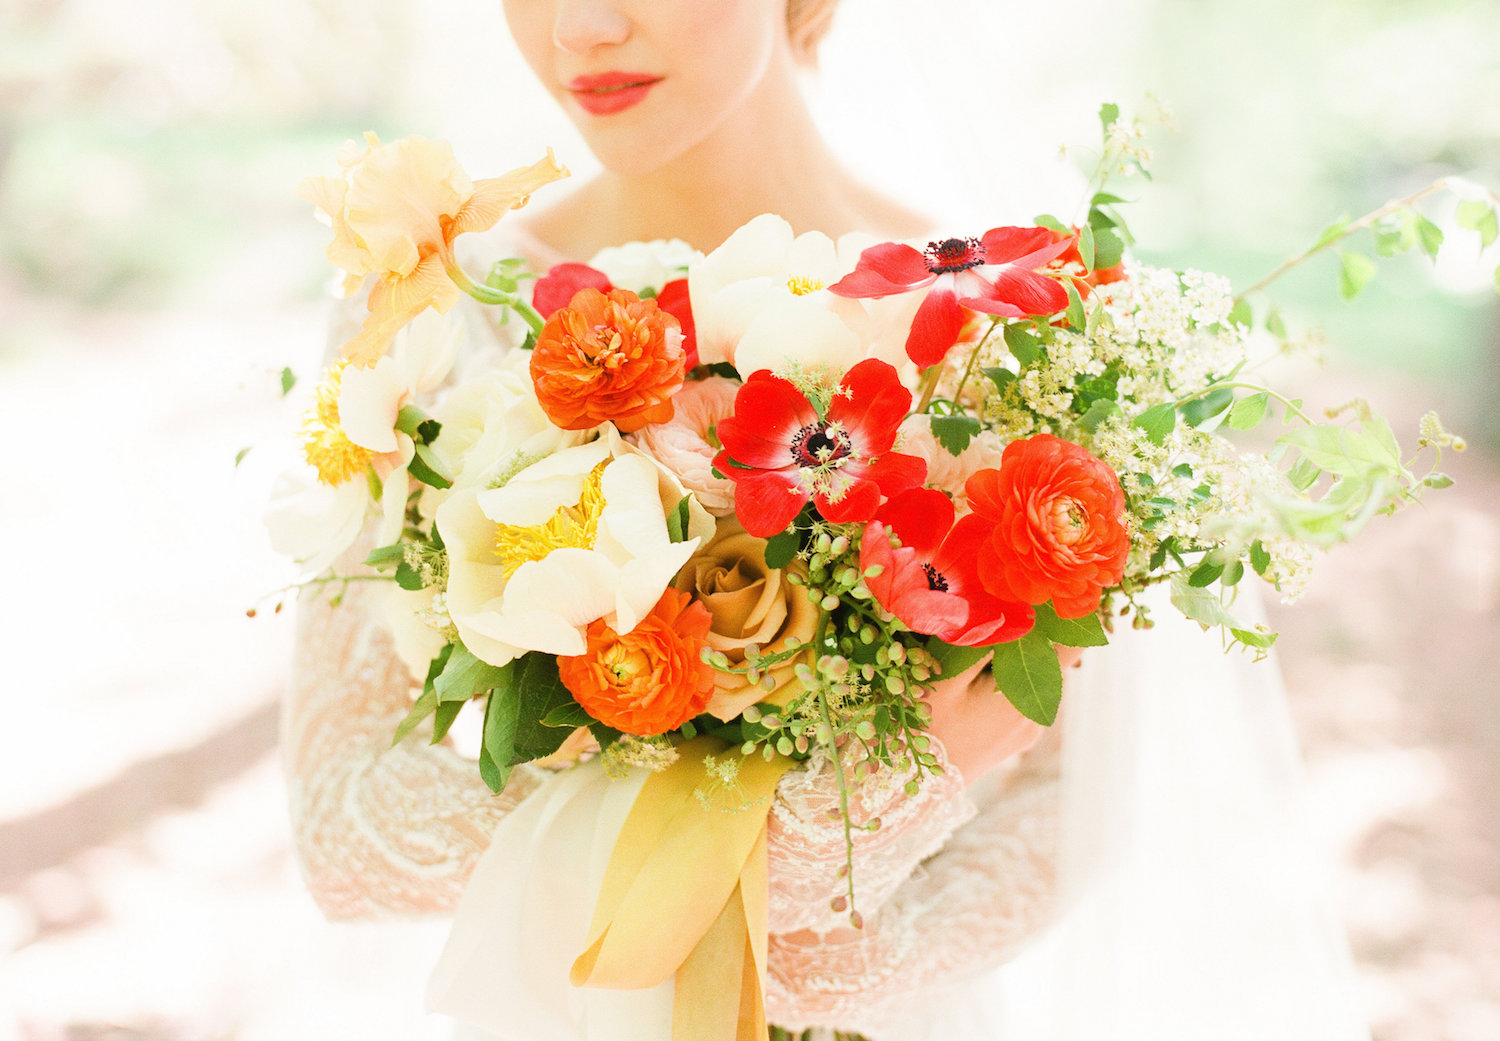 Morning Glow - Full Aperture Floral & Lindsay Madden Photography 7.jpg